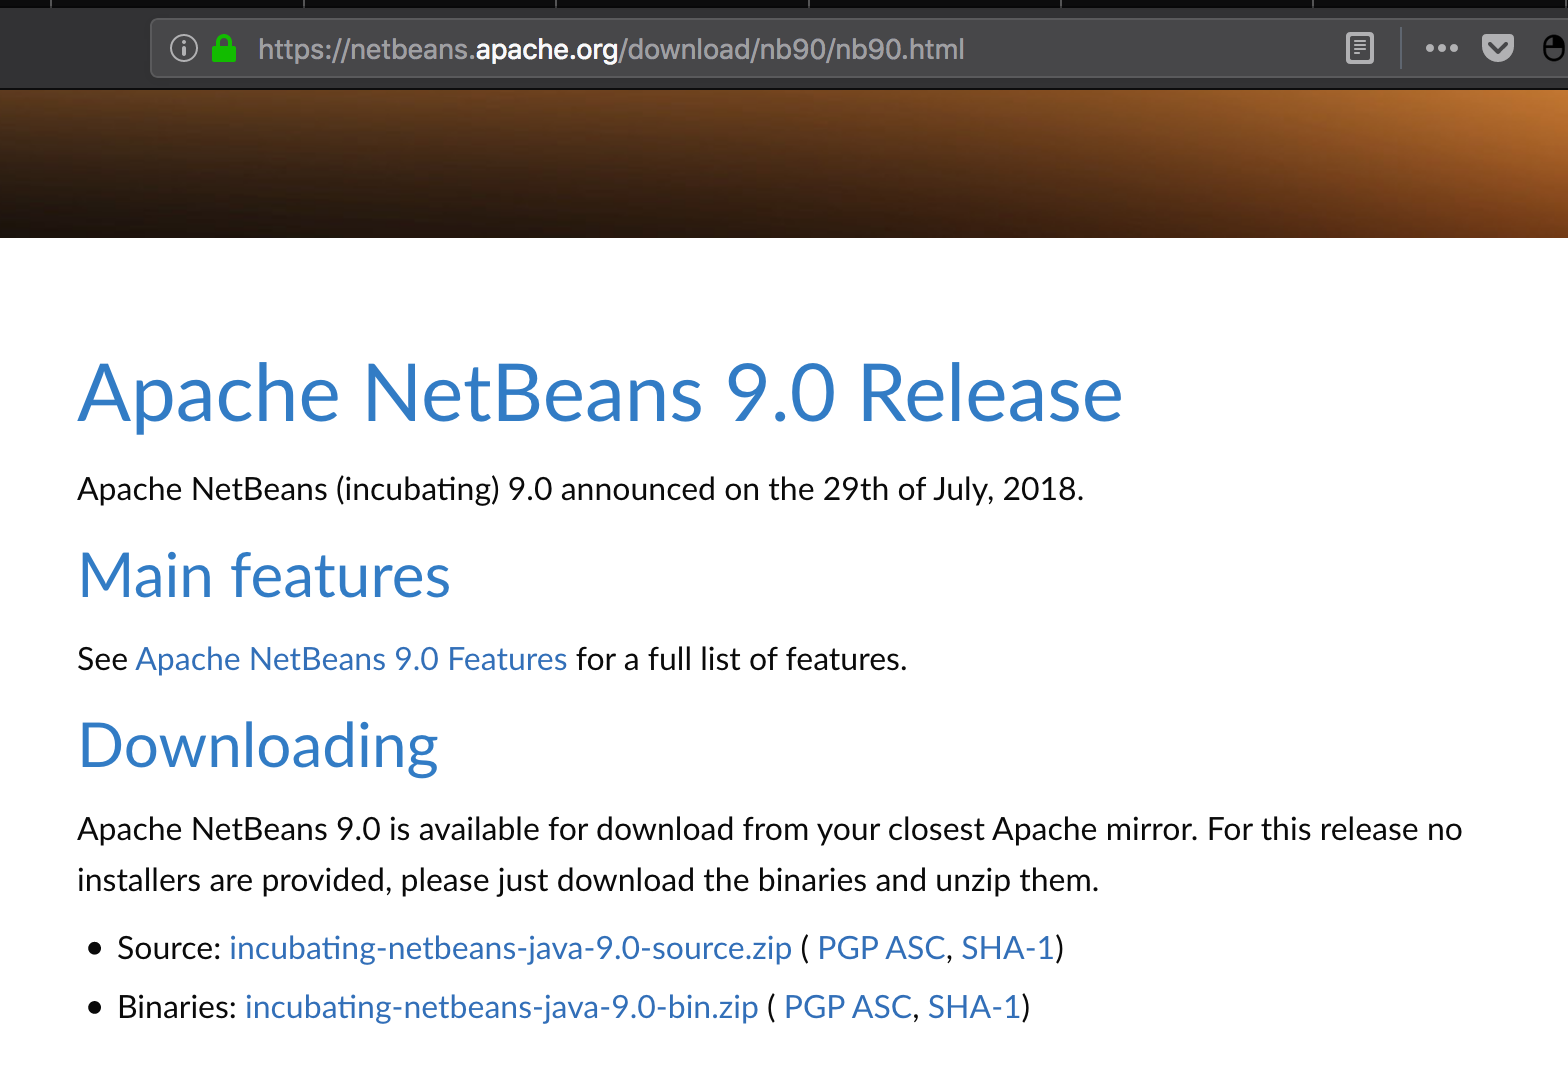 Java EE/Jakarta EE Support for NetBeans 9 - DZone Java